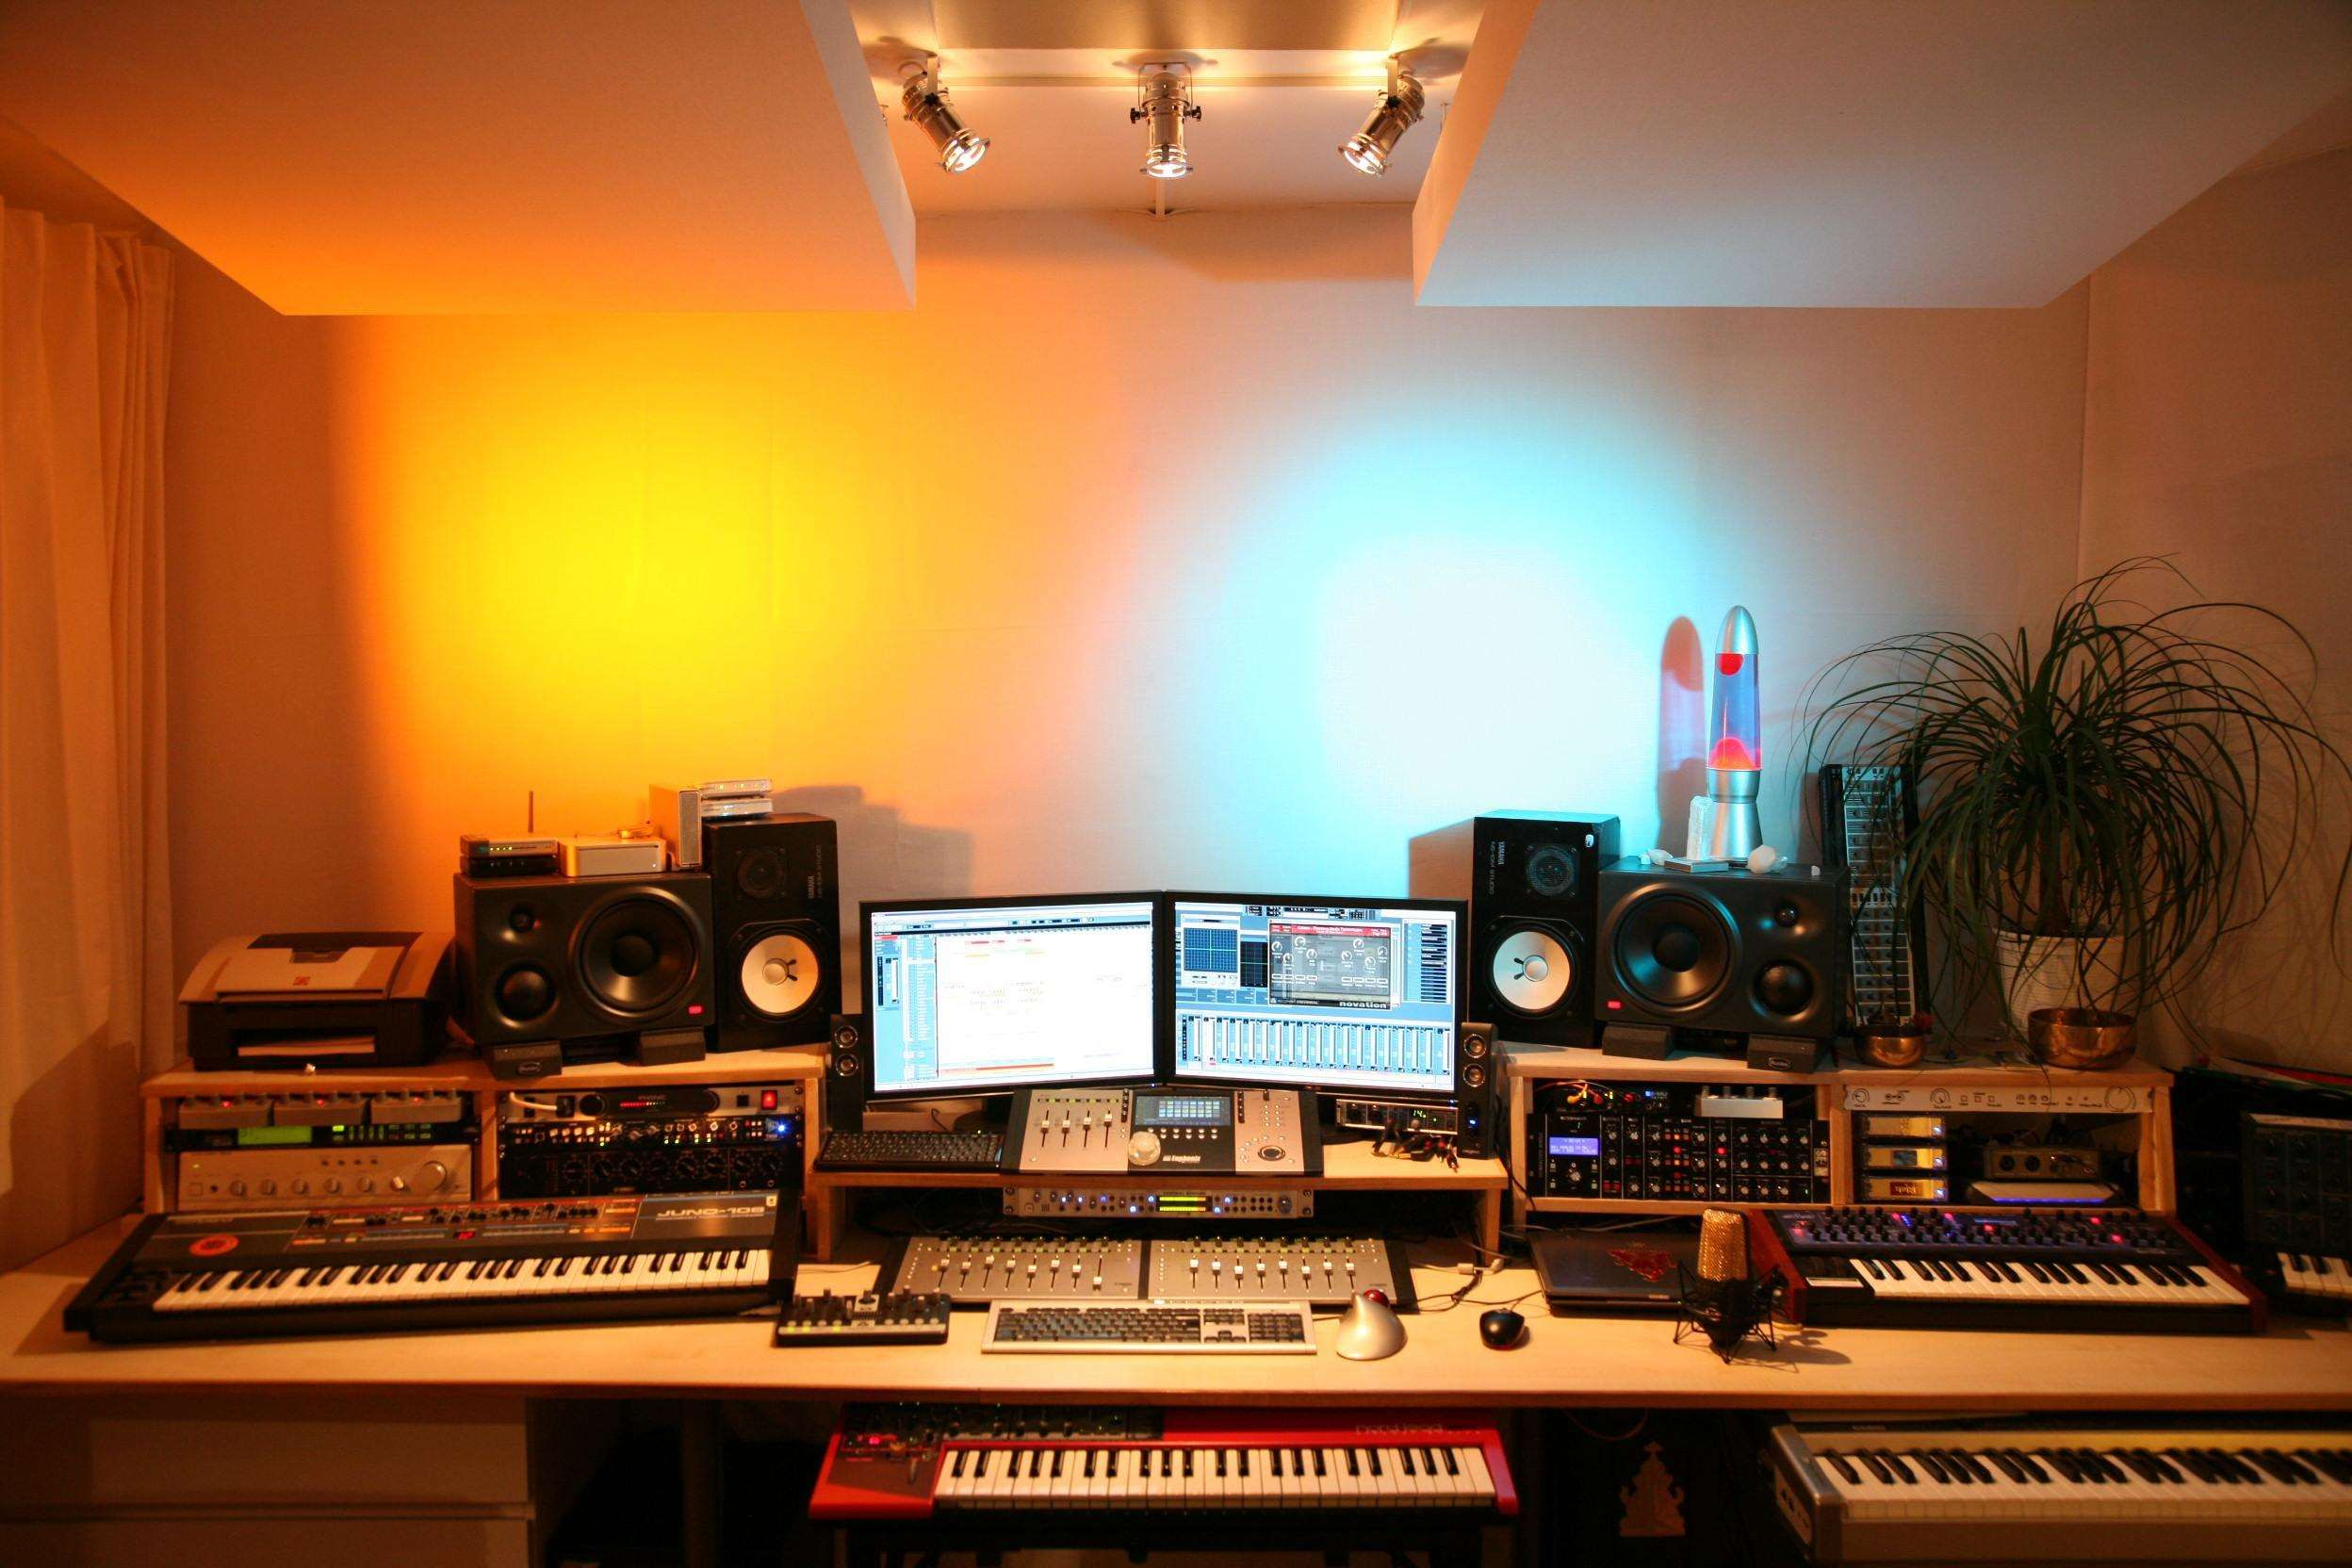 Hd Wallpaper Wallpaper Recording Studio Home Studio Room Studio Desk